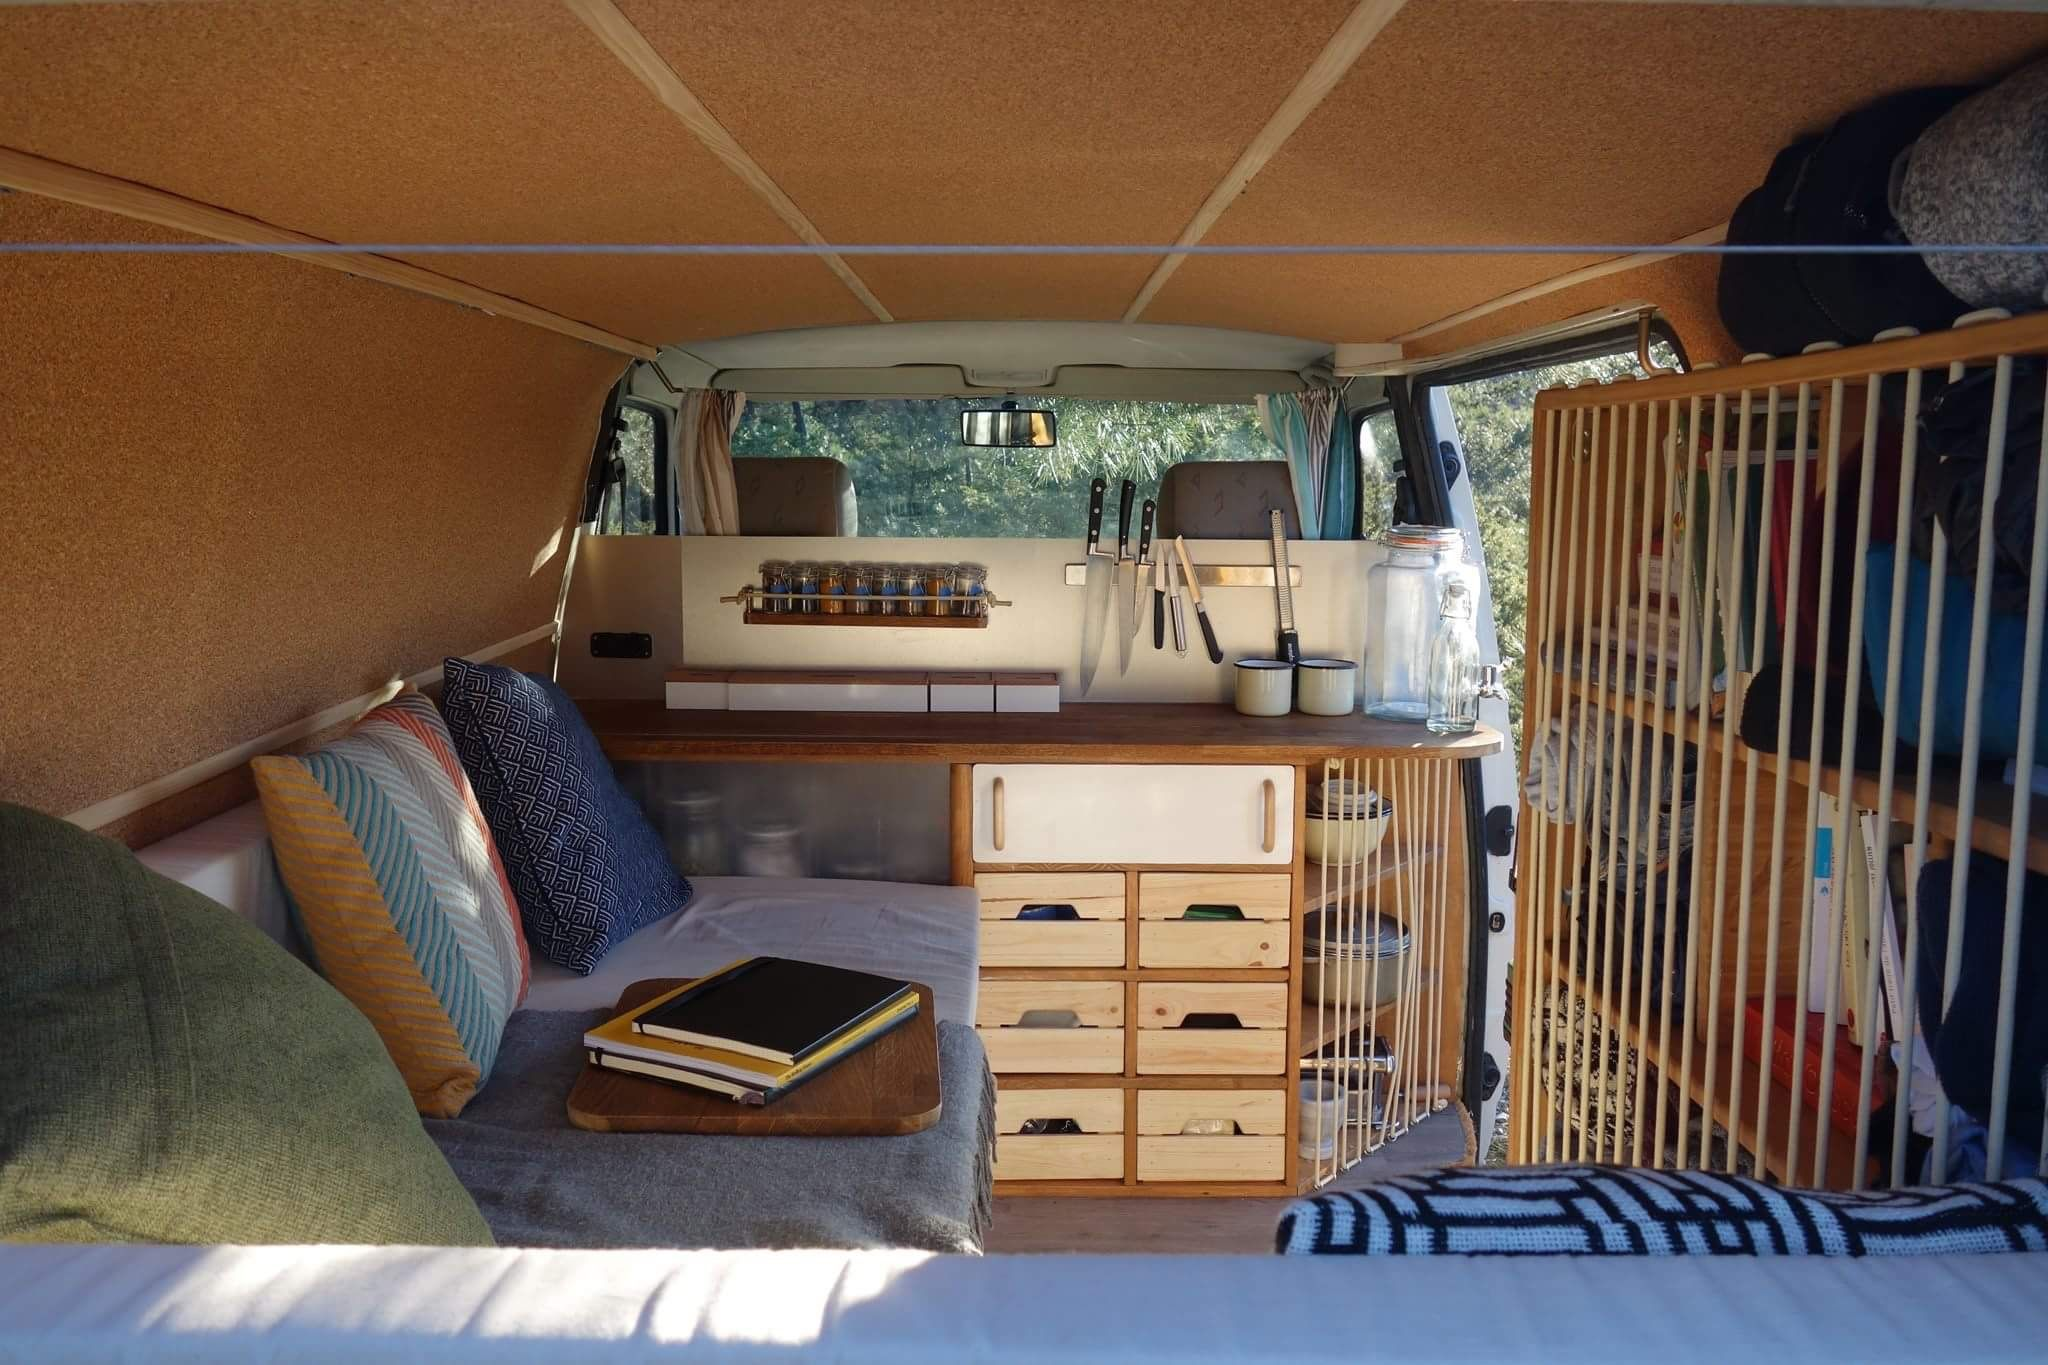 Instagram: @radius_ulna - Blog: www.radius-ulna.com - Cosy Camper van's interior design to travel thought Europe. Cork/wood/L shape Bed/ elastic rope/spice rack/organisation